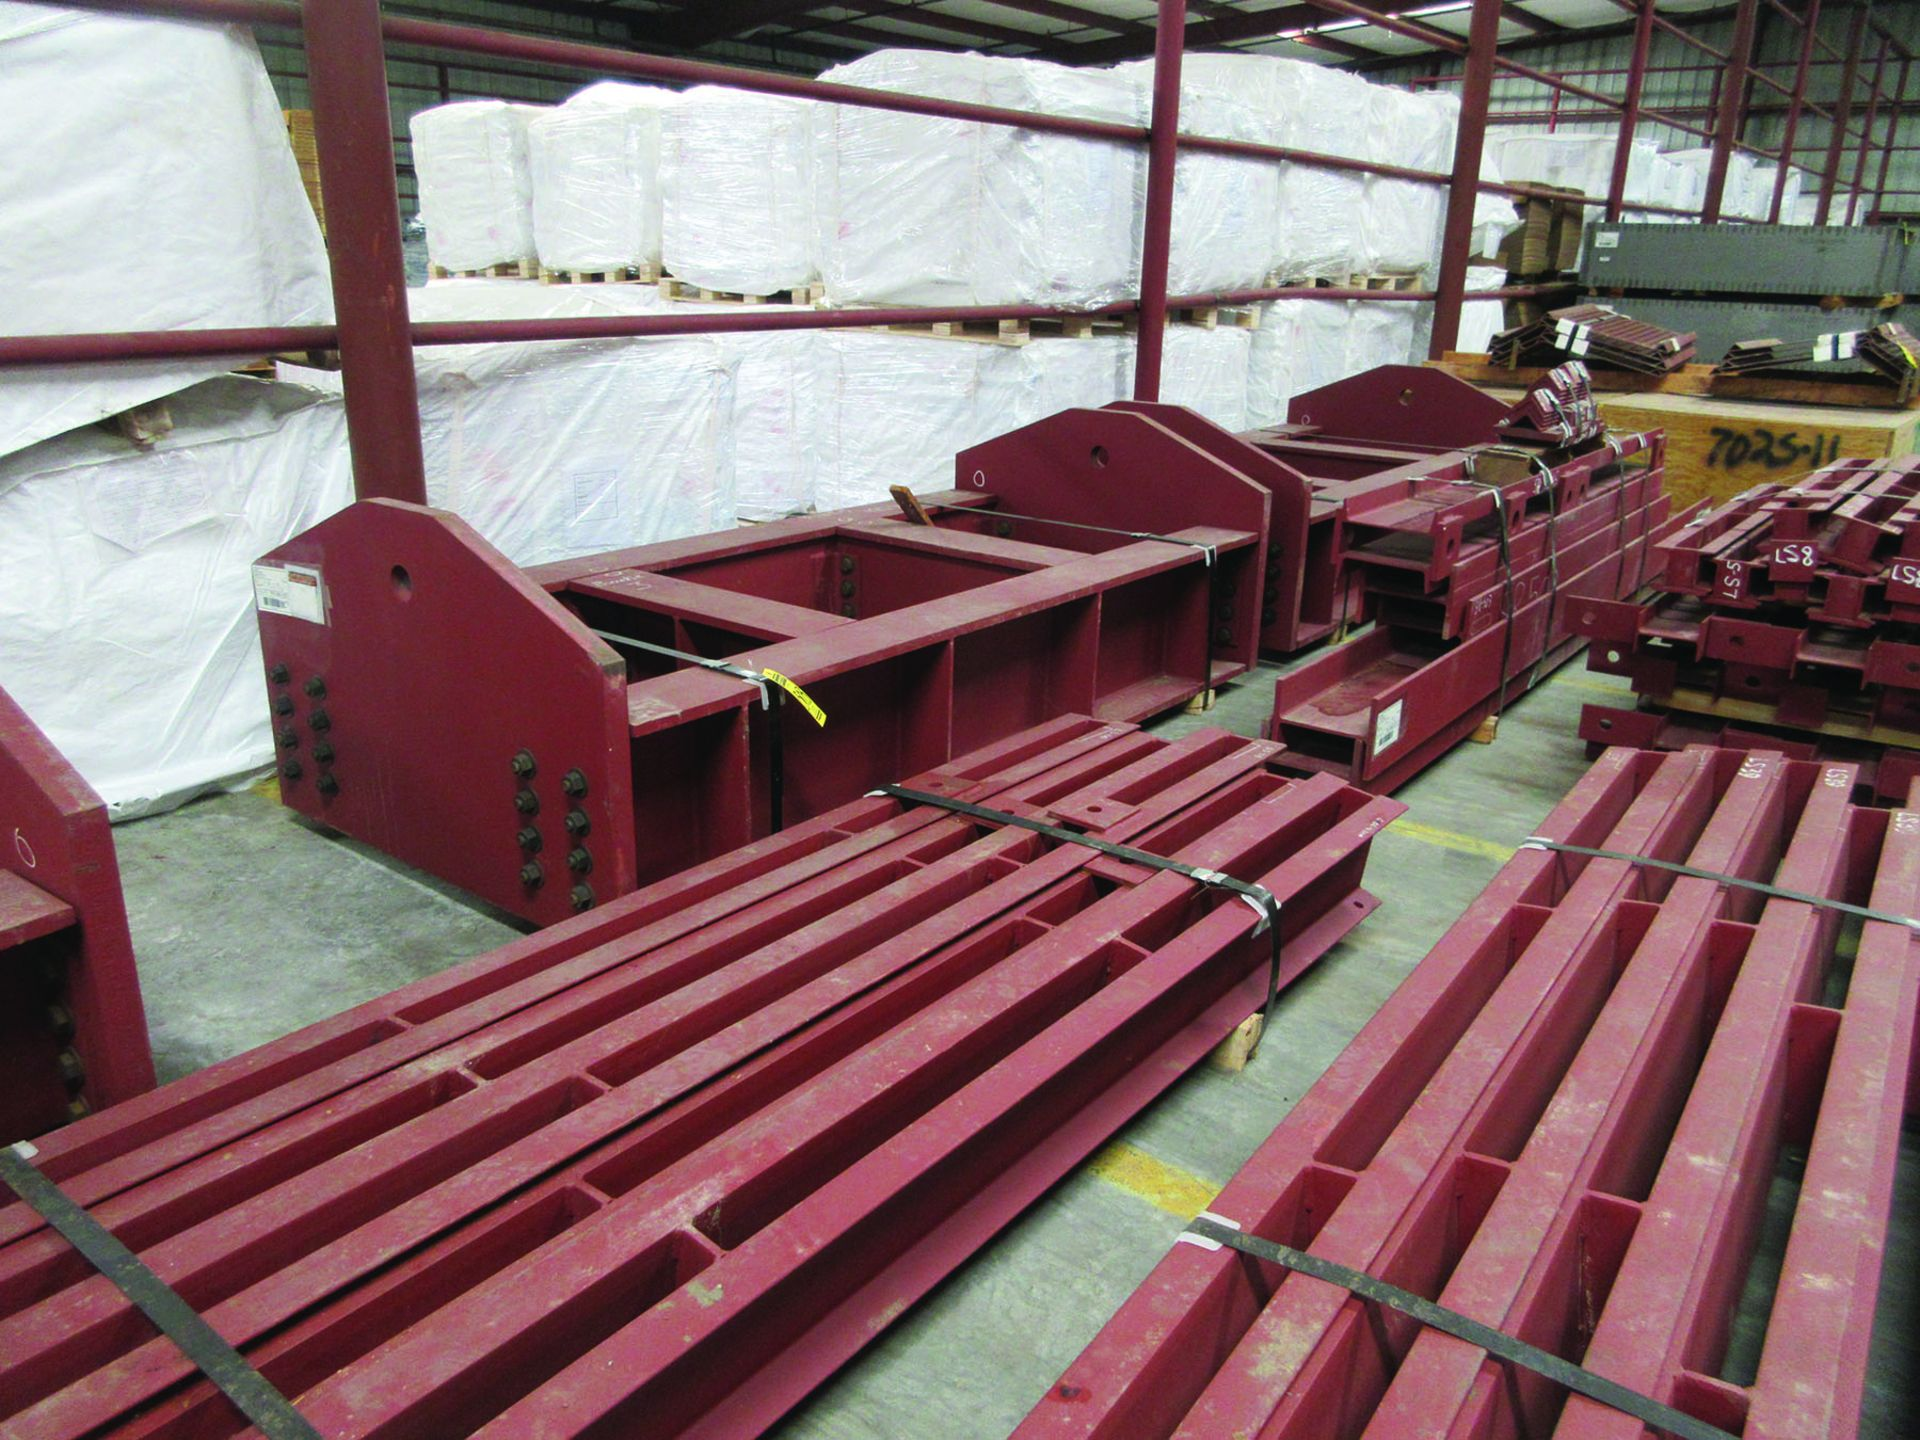 LARGE LOT OF STRUCTURAL STEEL: BRACING, RODS, BRACKETS, GRID C7 - Image 6 of 19